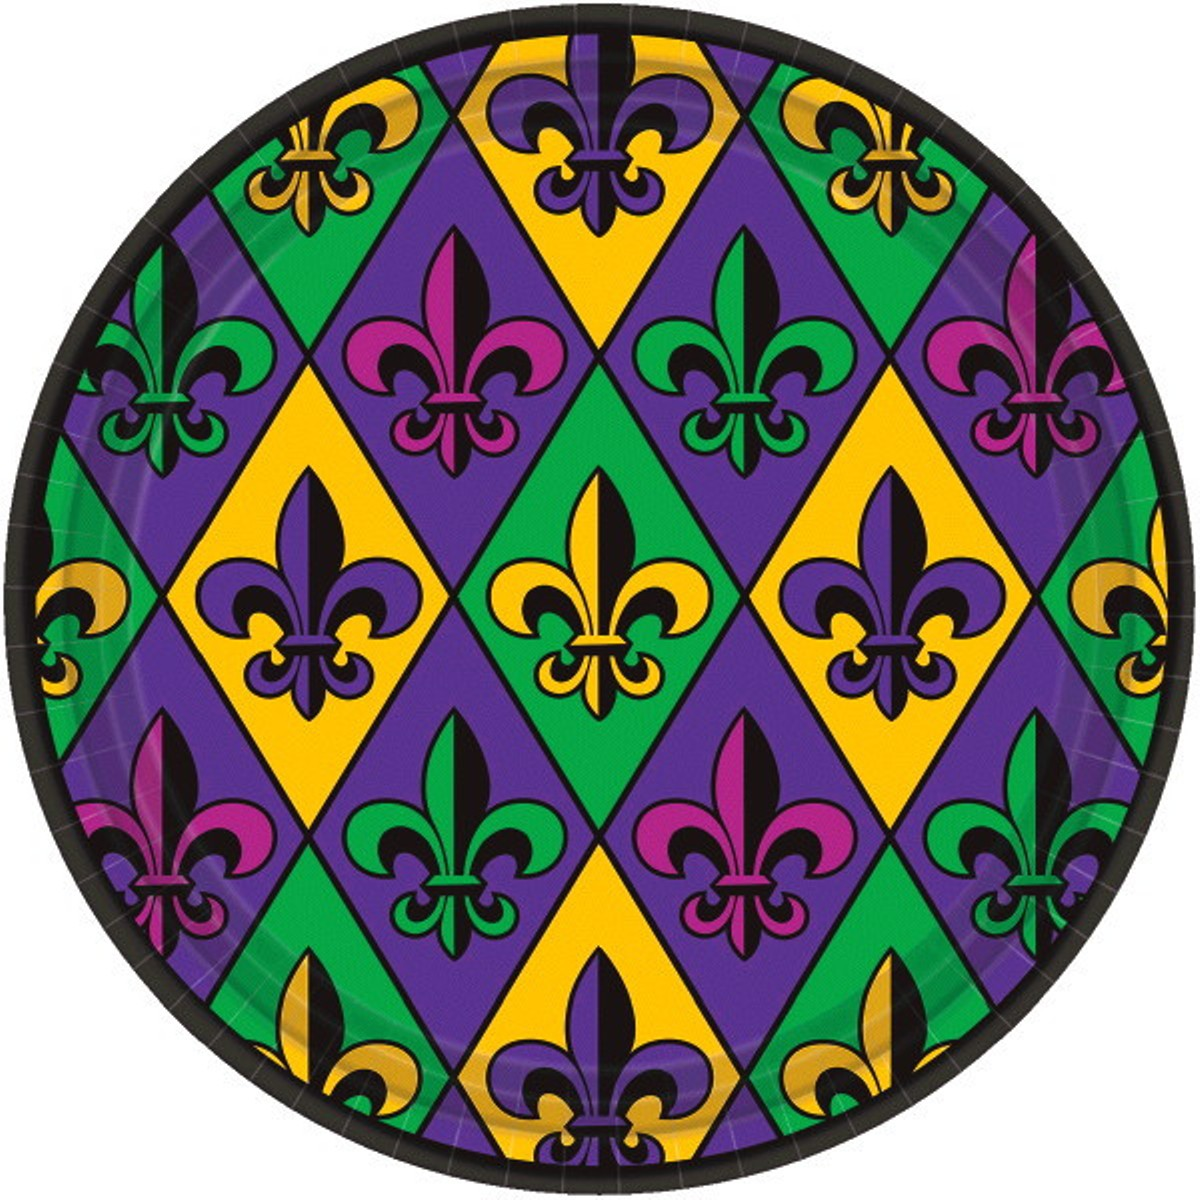 "Fleur De Lis 18 ct Paper 9"" Lunch Plates Value Size Mardi Gras"